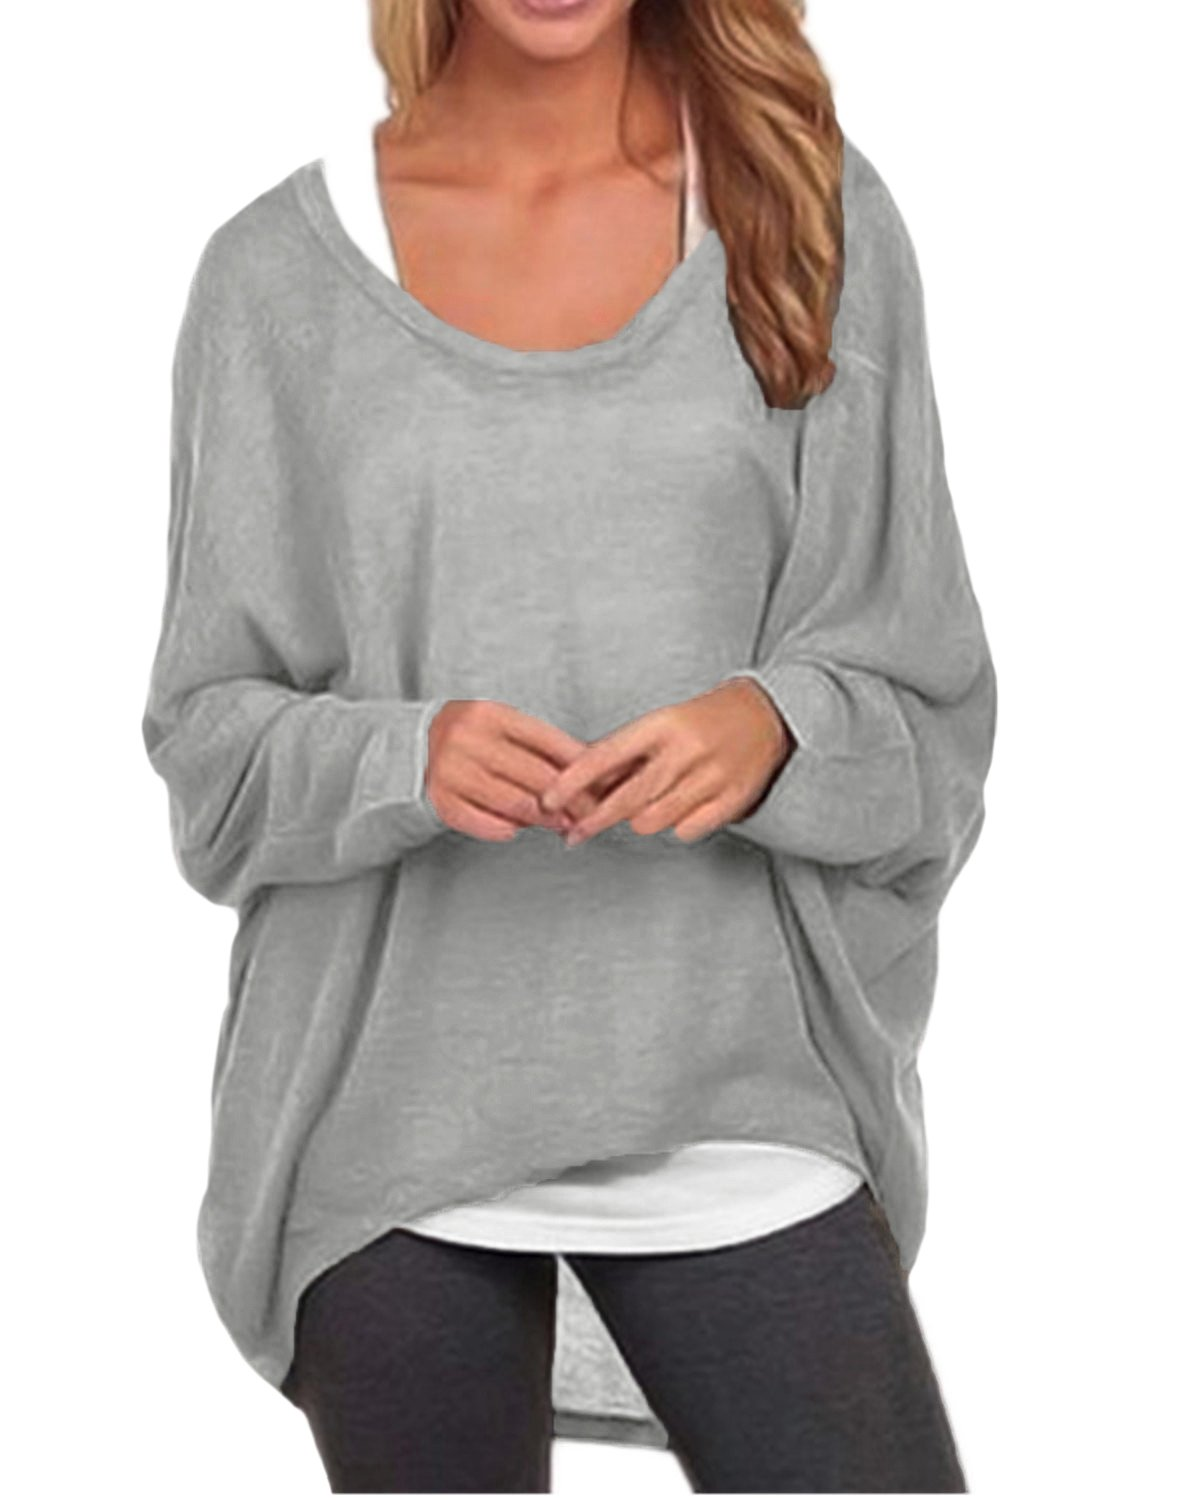 ZANZEA Women's Long Batwing Sleeve Loose Oversize Pullover Sweater Top Blouse Gray US 16/Tag Size 3XL